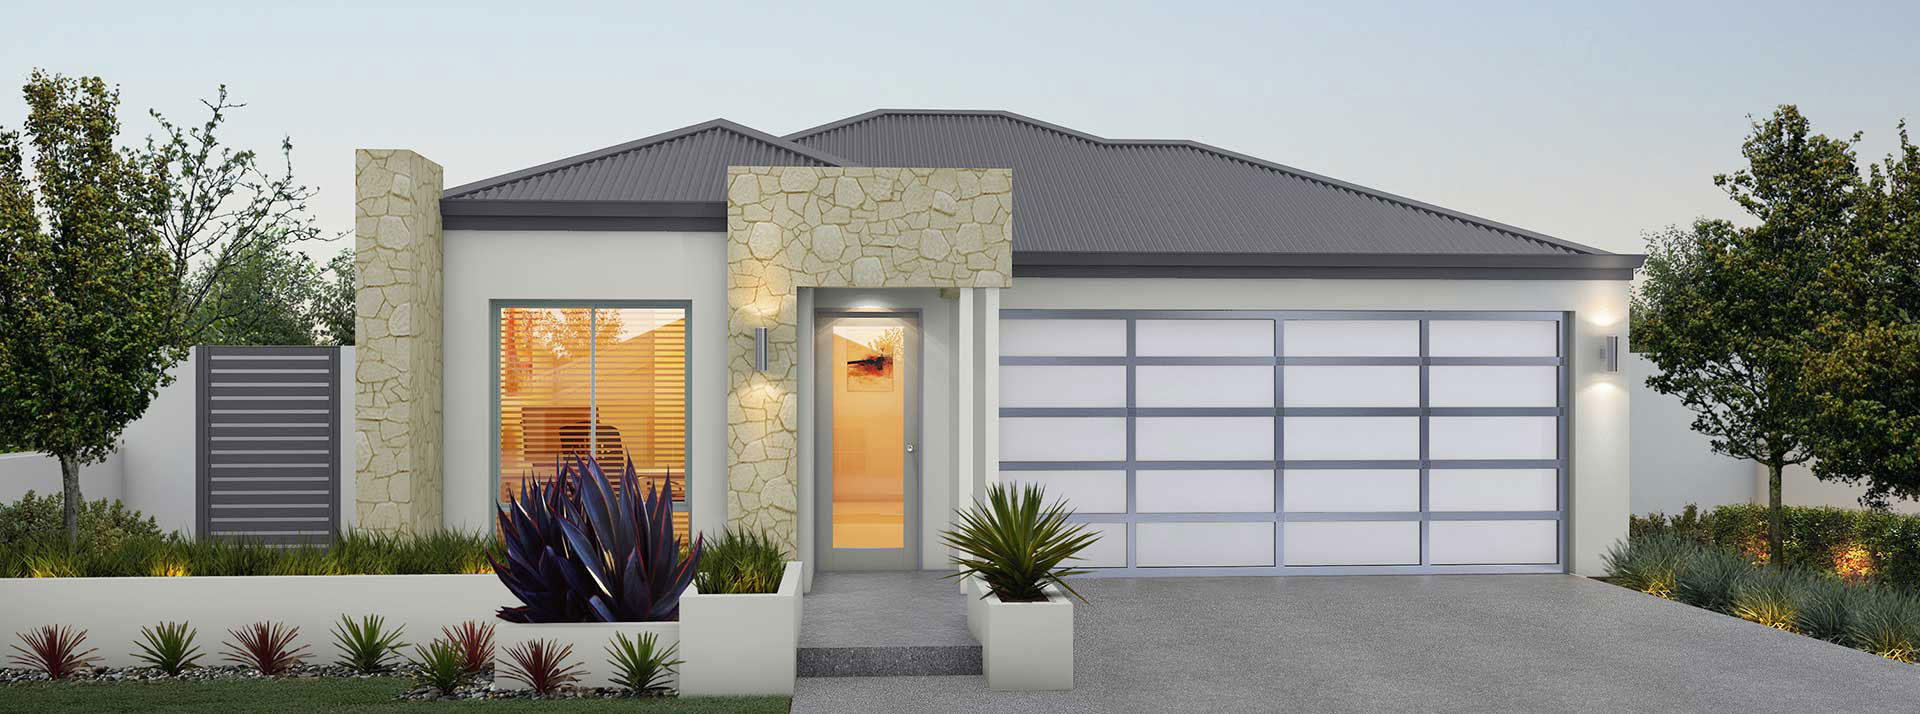 "House frontage of single storey home design ""My Boston"""